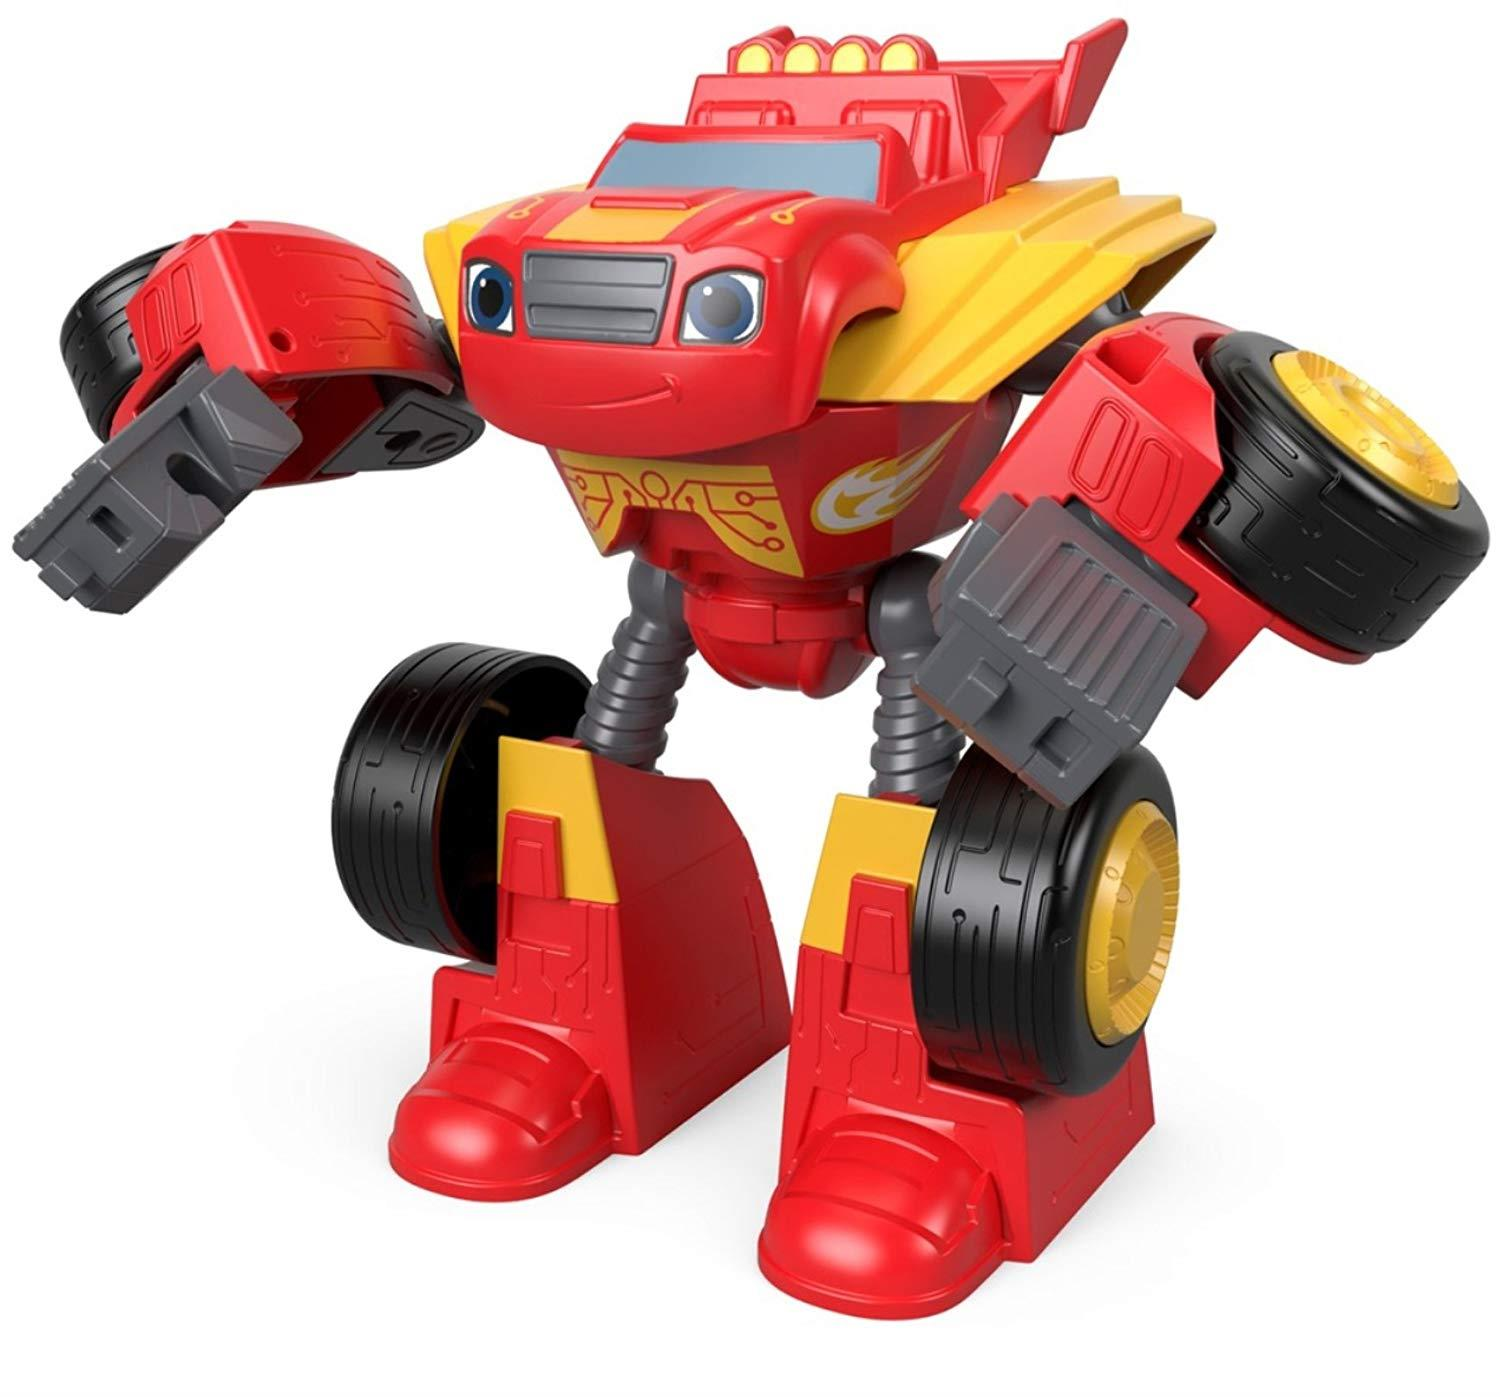 Blaze And The Monster Machines Blaze Transforming Robot Rider